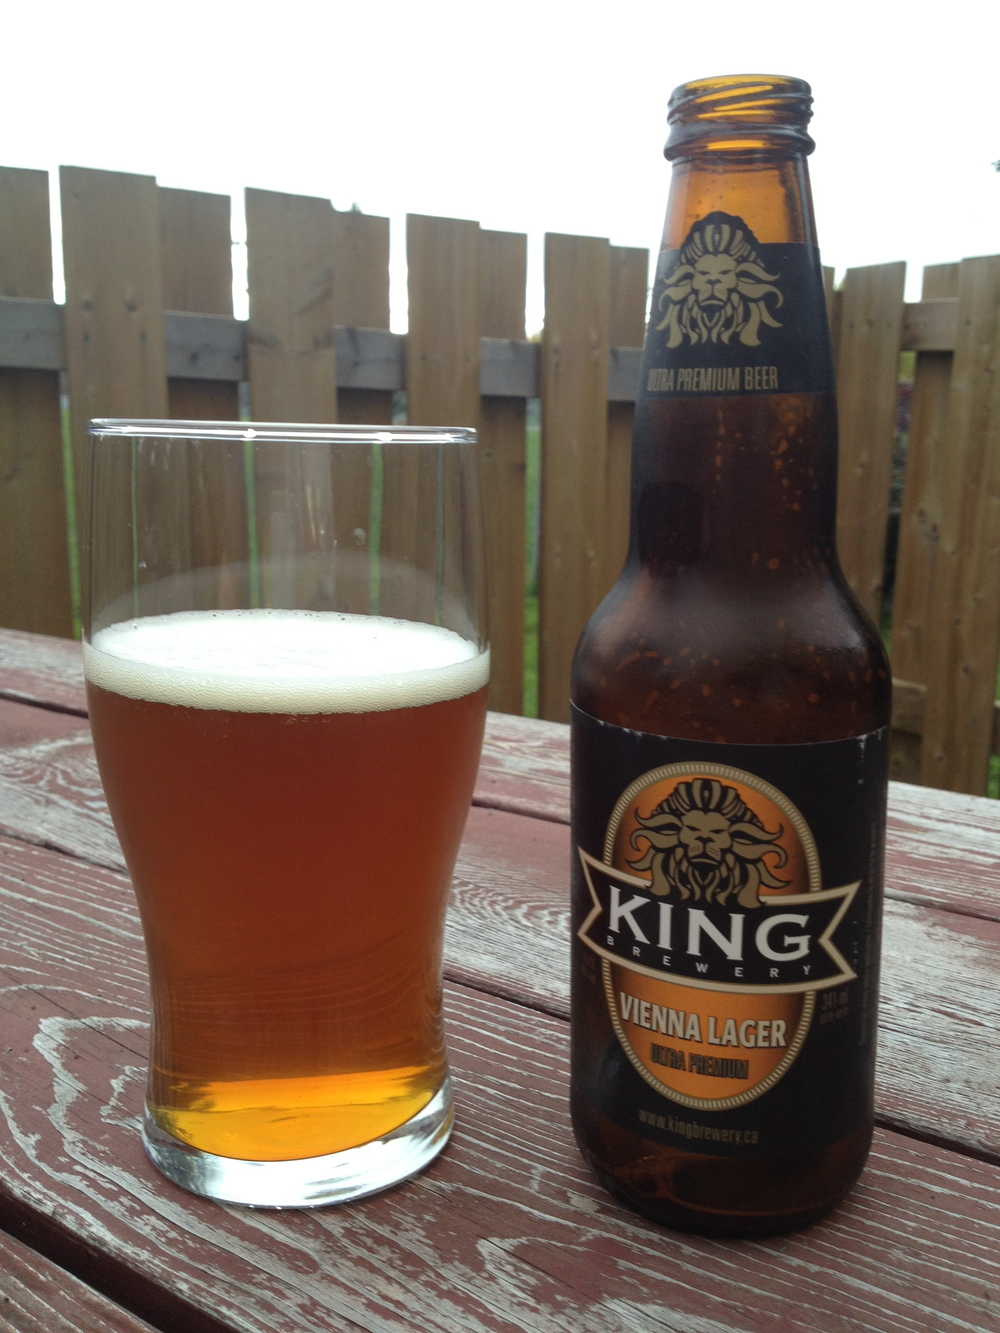 King Vienna Lager - Gold award winner for Amber Lager at the 2011 Canadian Brewing Awards. Rightfully so!